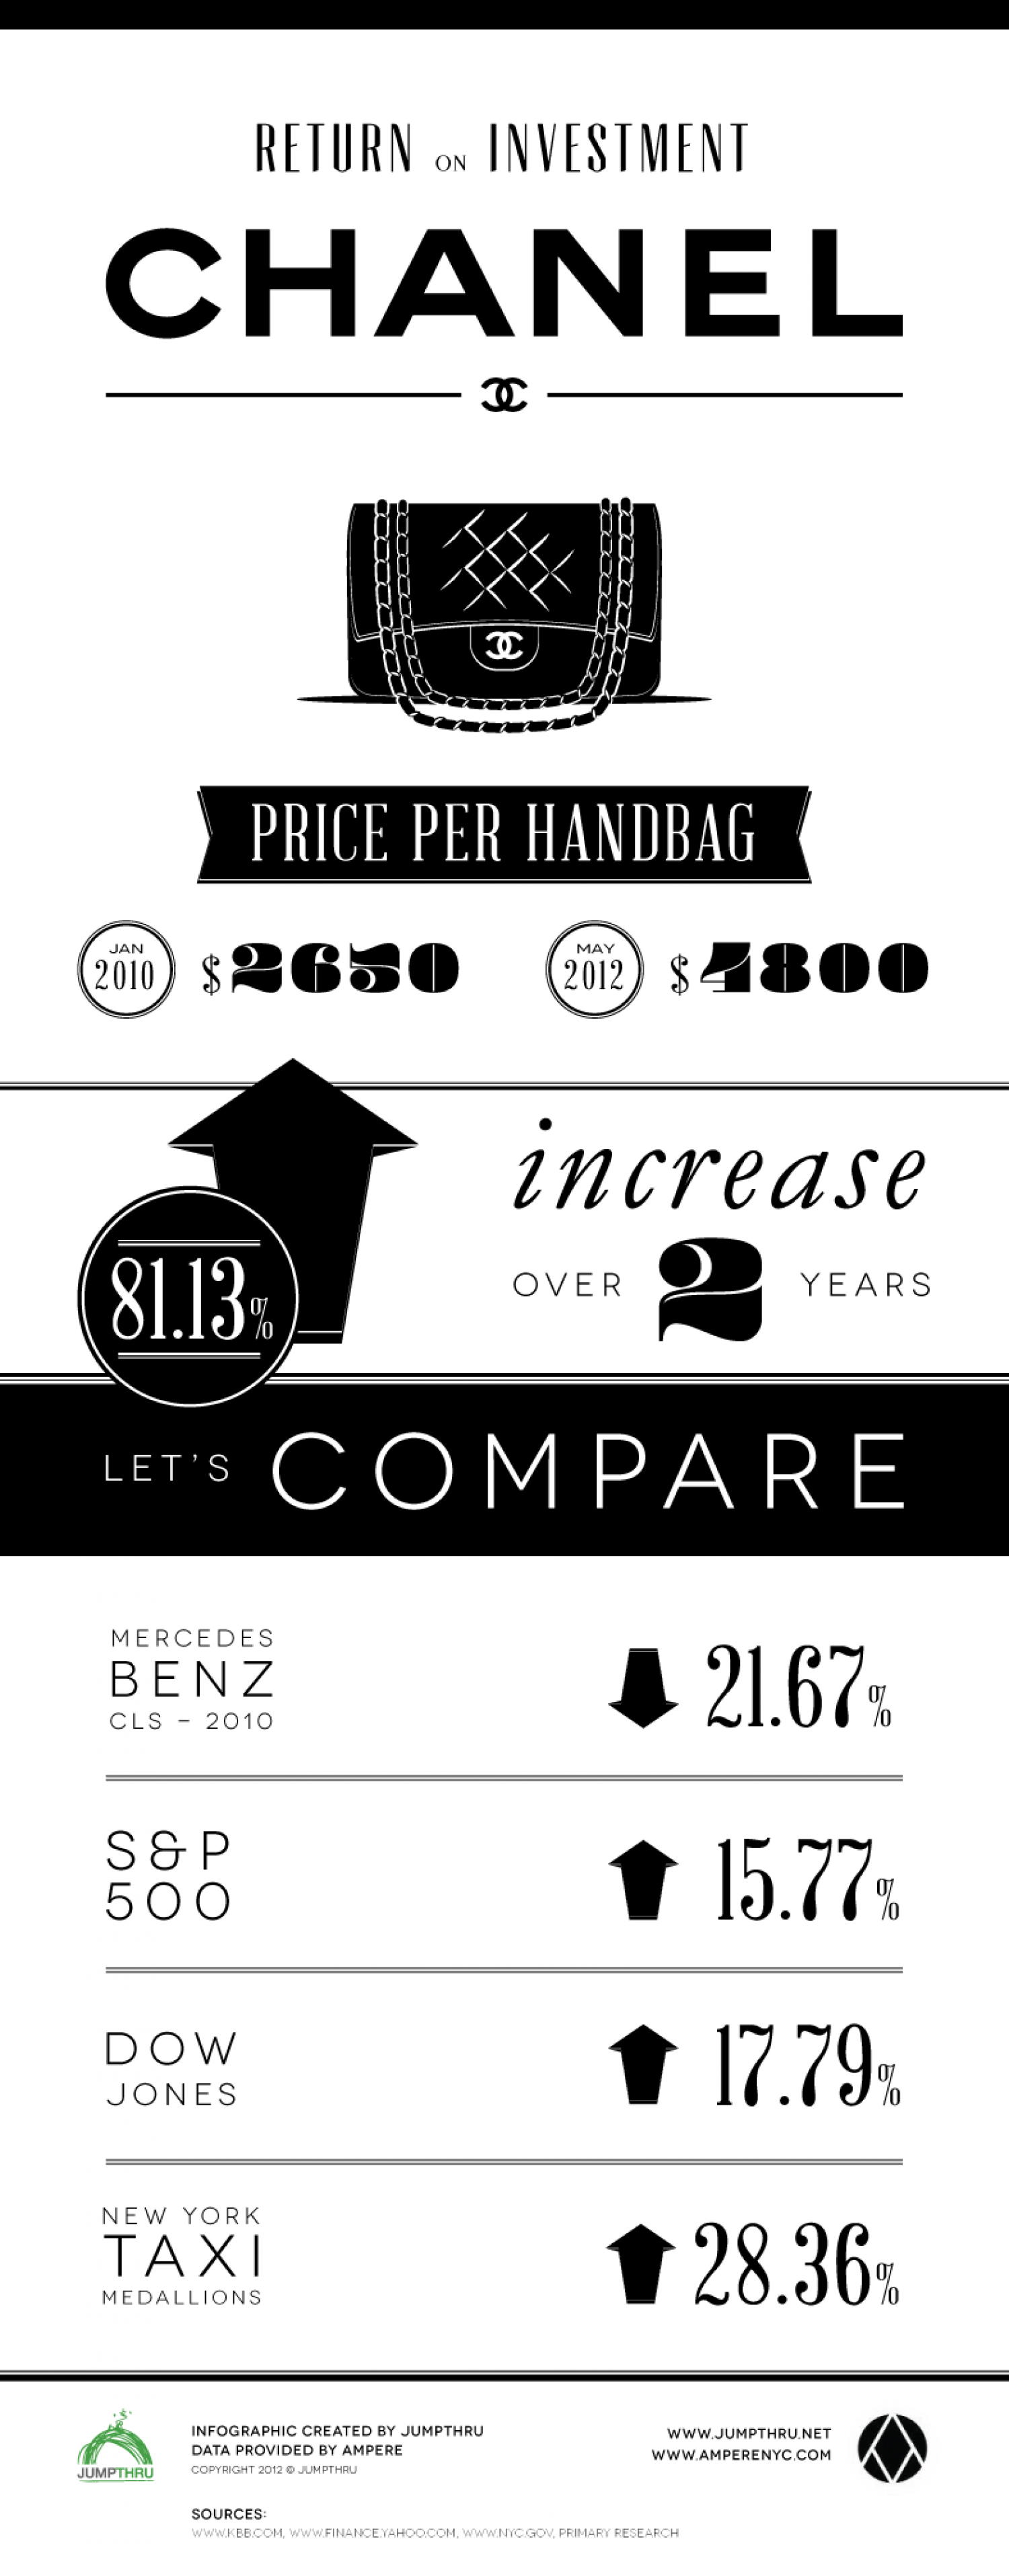 Return on Investment - Chanel Infographic